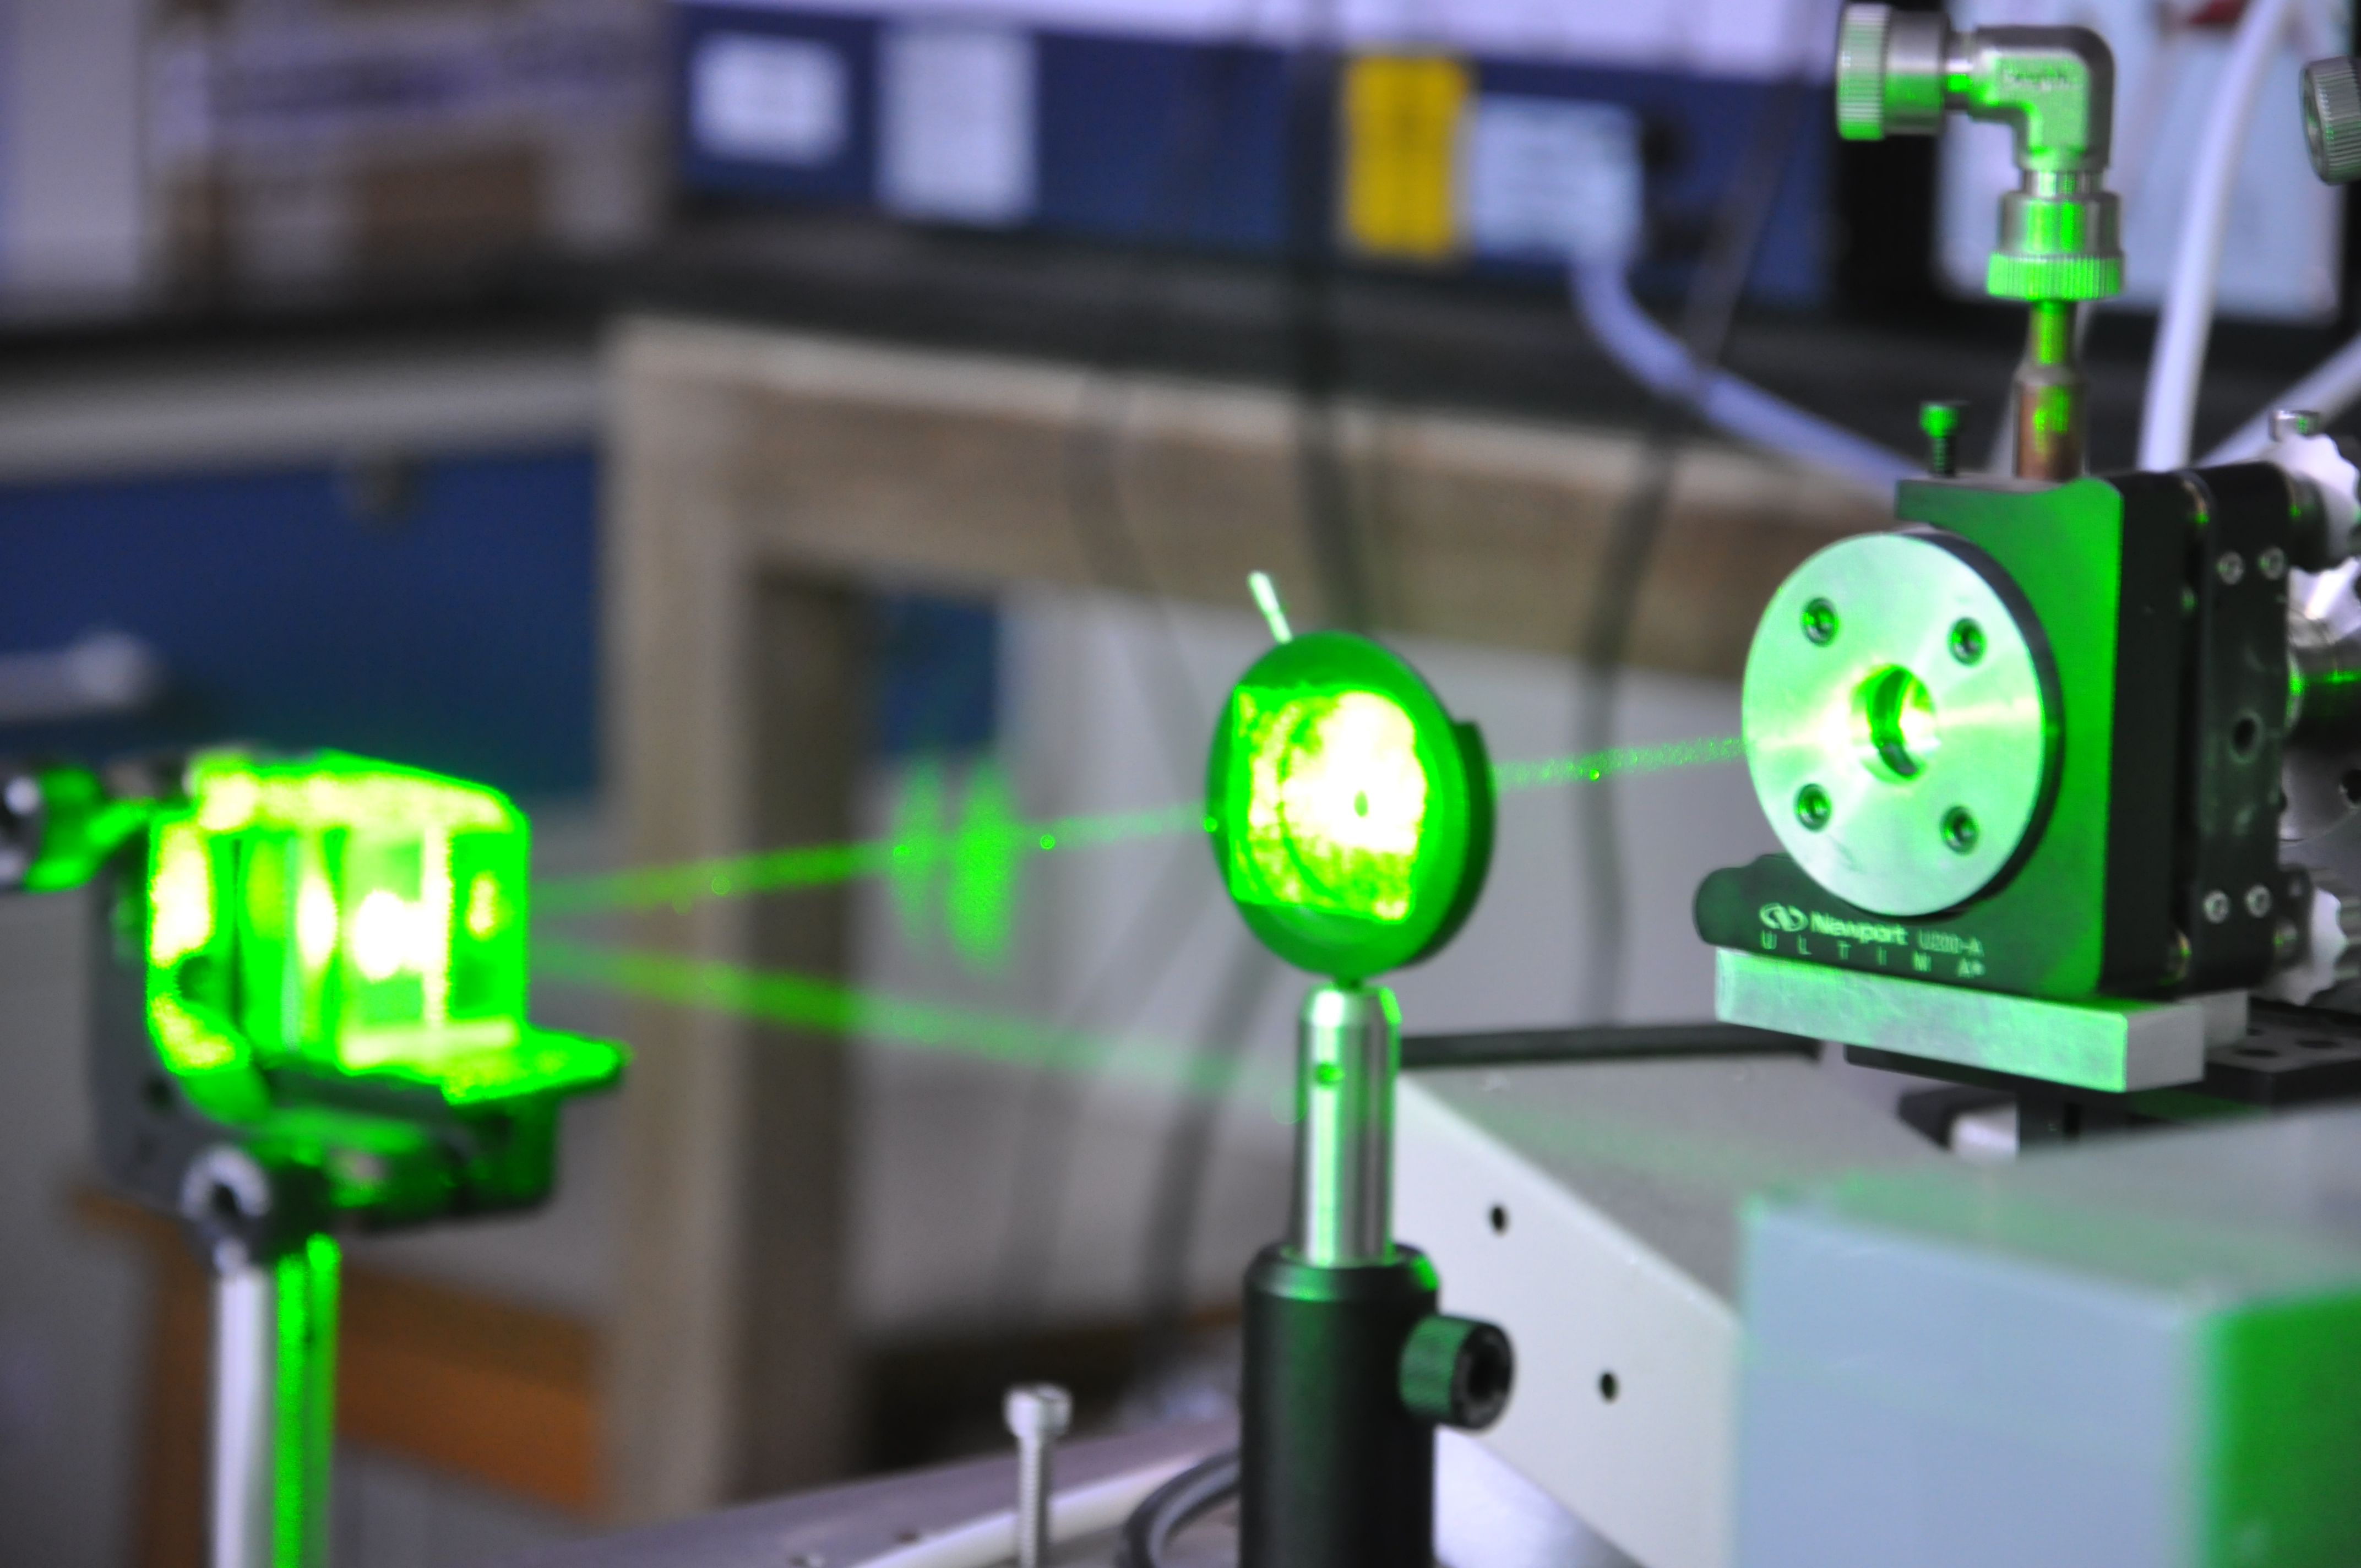 nanosecond pulsed LASERs